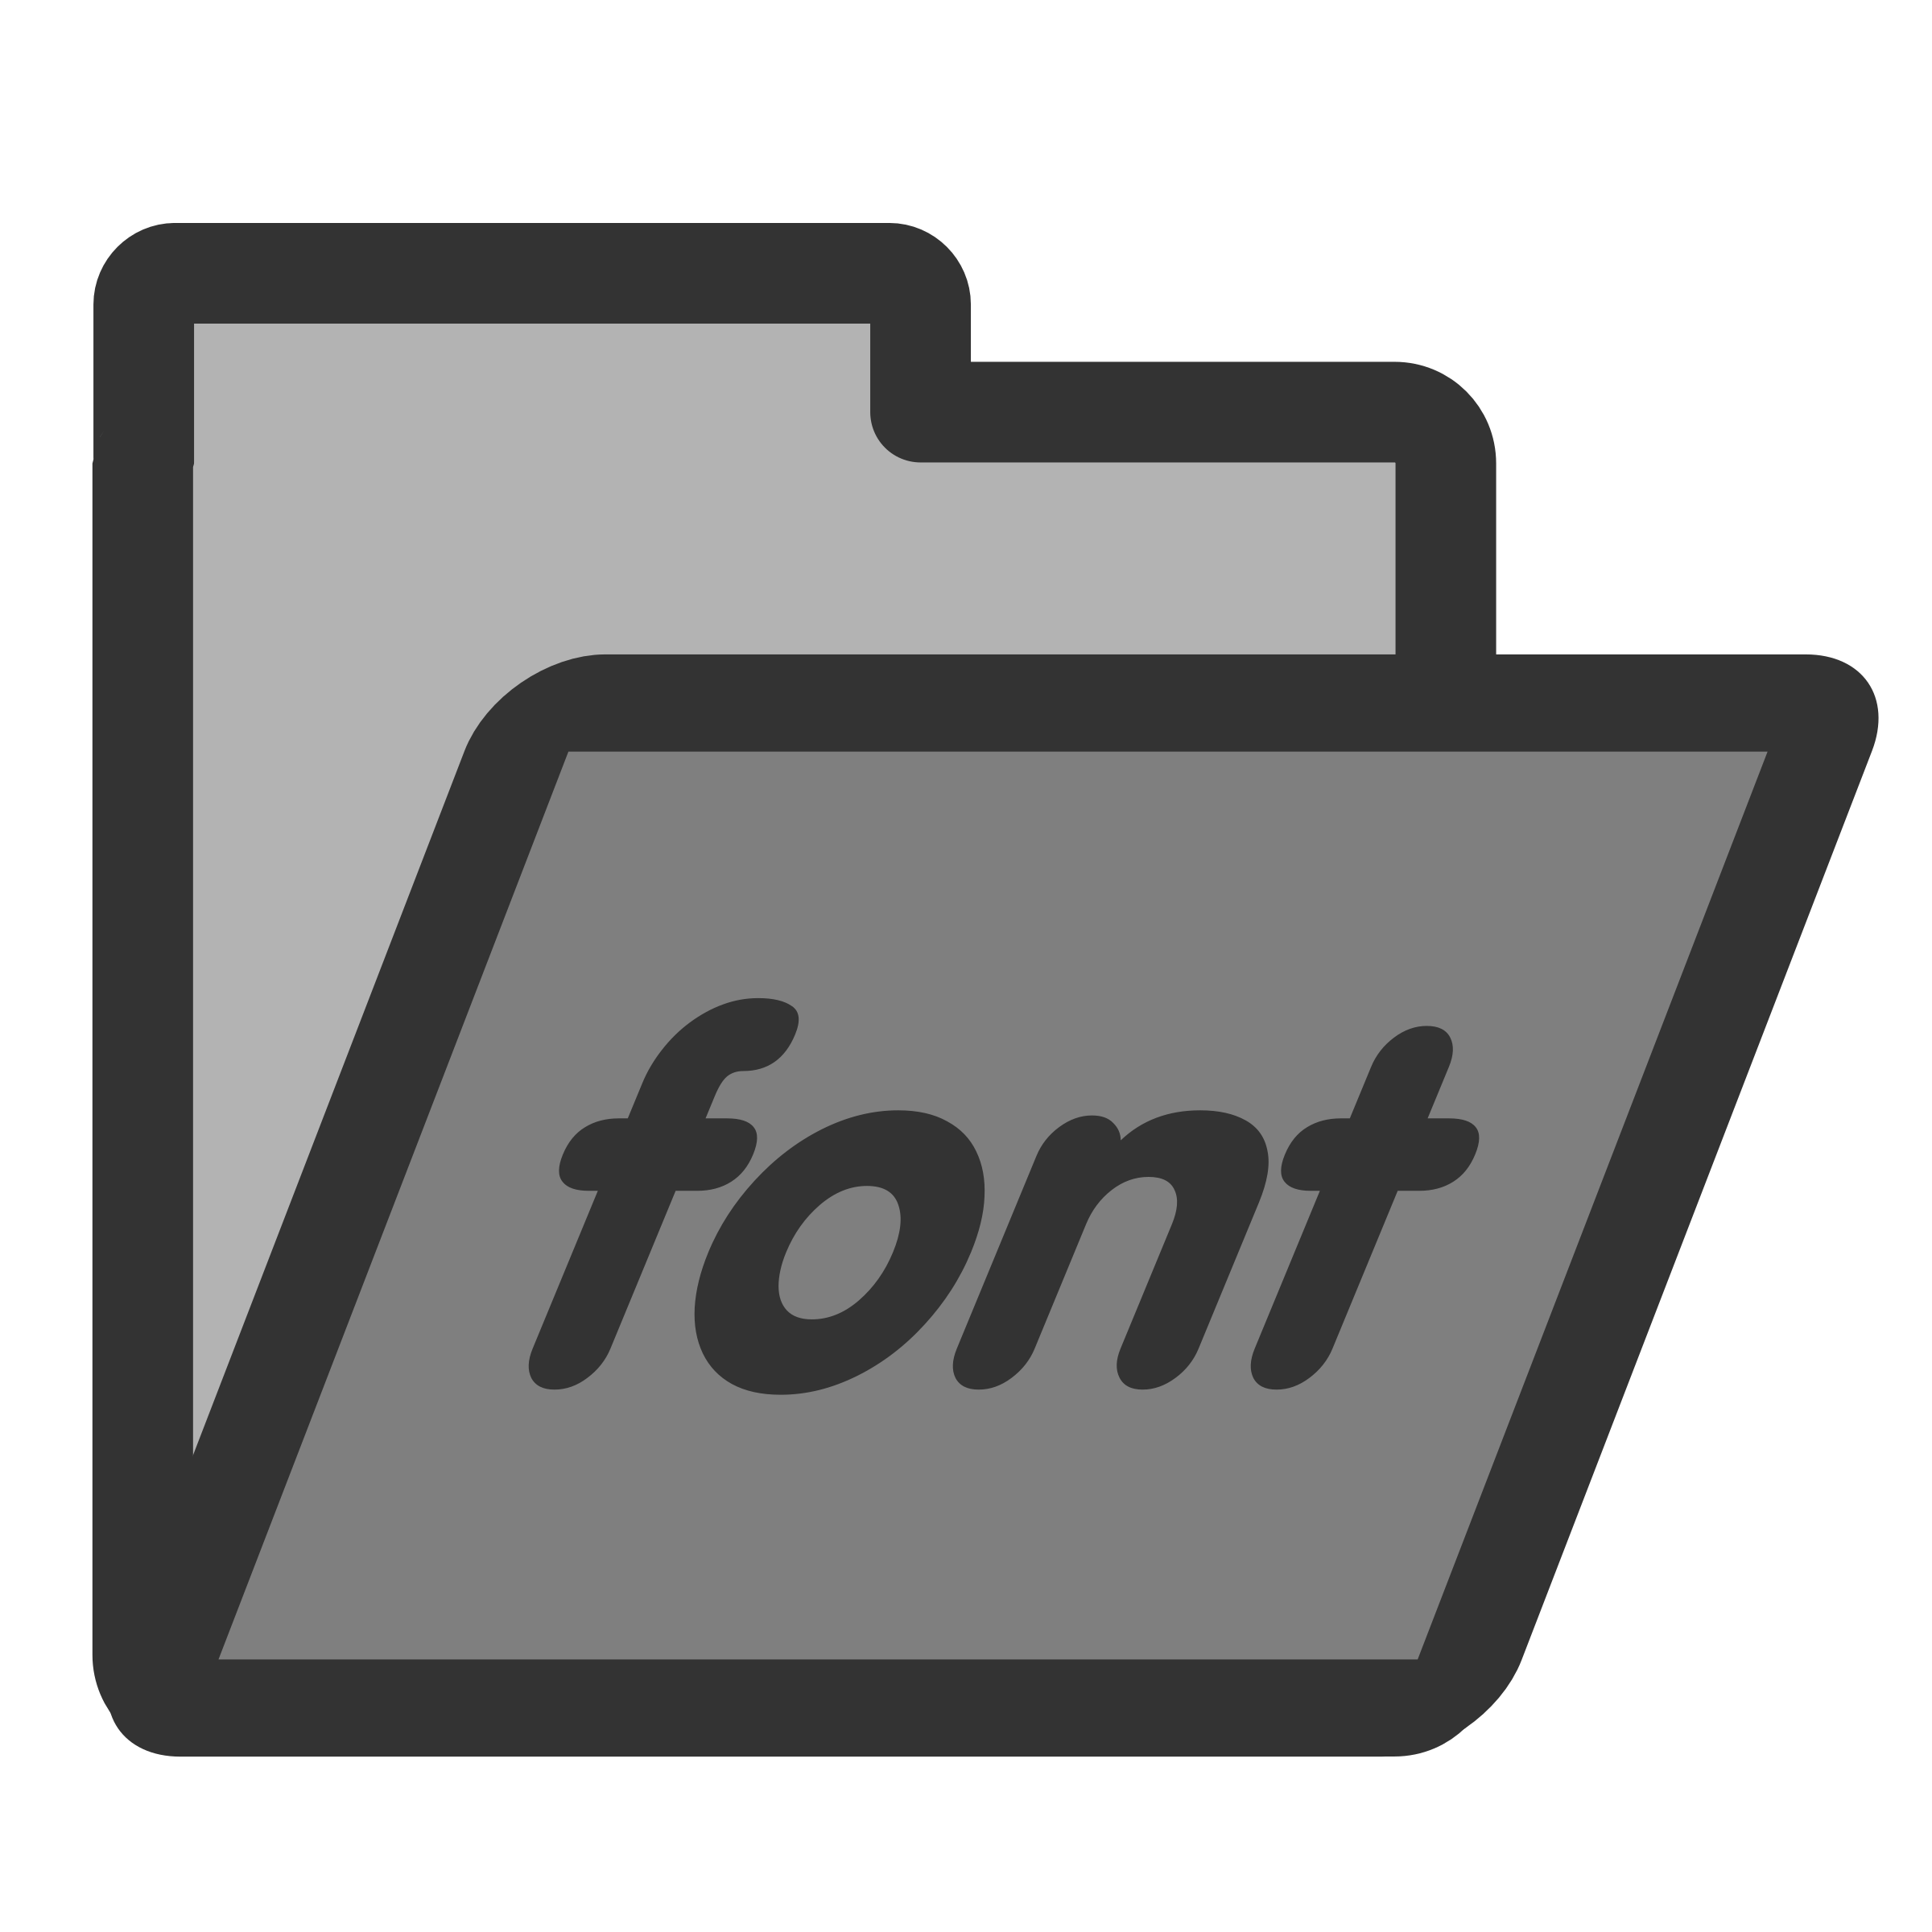 folder fonts by dannya